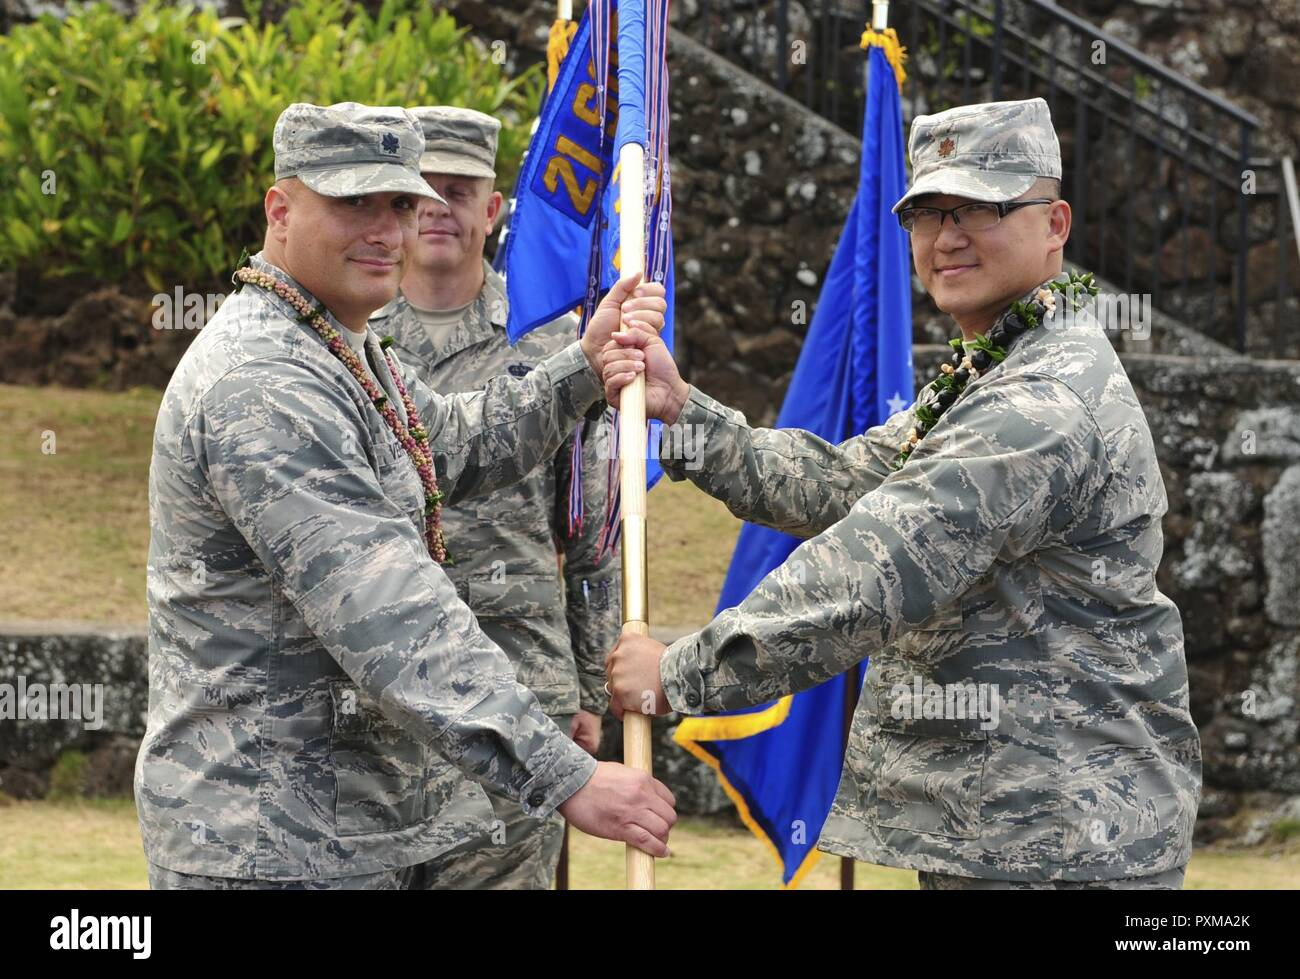 Lt. Col. Phillip Verroco, 21st Space Operations Squadron commander, gives the detachment flag to Maj. Edmond Chan, Detachment 3 incoming commander, during the Detachment 3 Change of Command Ceremony, Kaena Point, Hawaii, June 9, 2017.  Detachment 3 is a component of the 21st Space Operations Squadron, 50th Network Operations Group, 50th Space Wing, and is located on the western tip of Oahu.  It is the oldest and one of seven worldwide remote tracking stations in the Air Force Satellite Control Network. - Stock Image